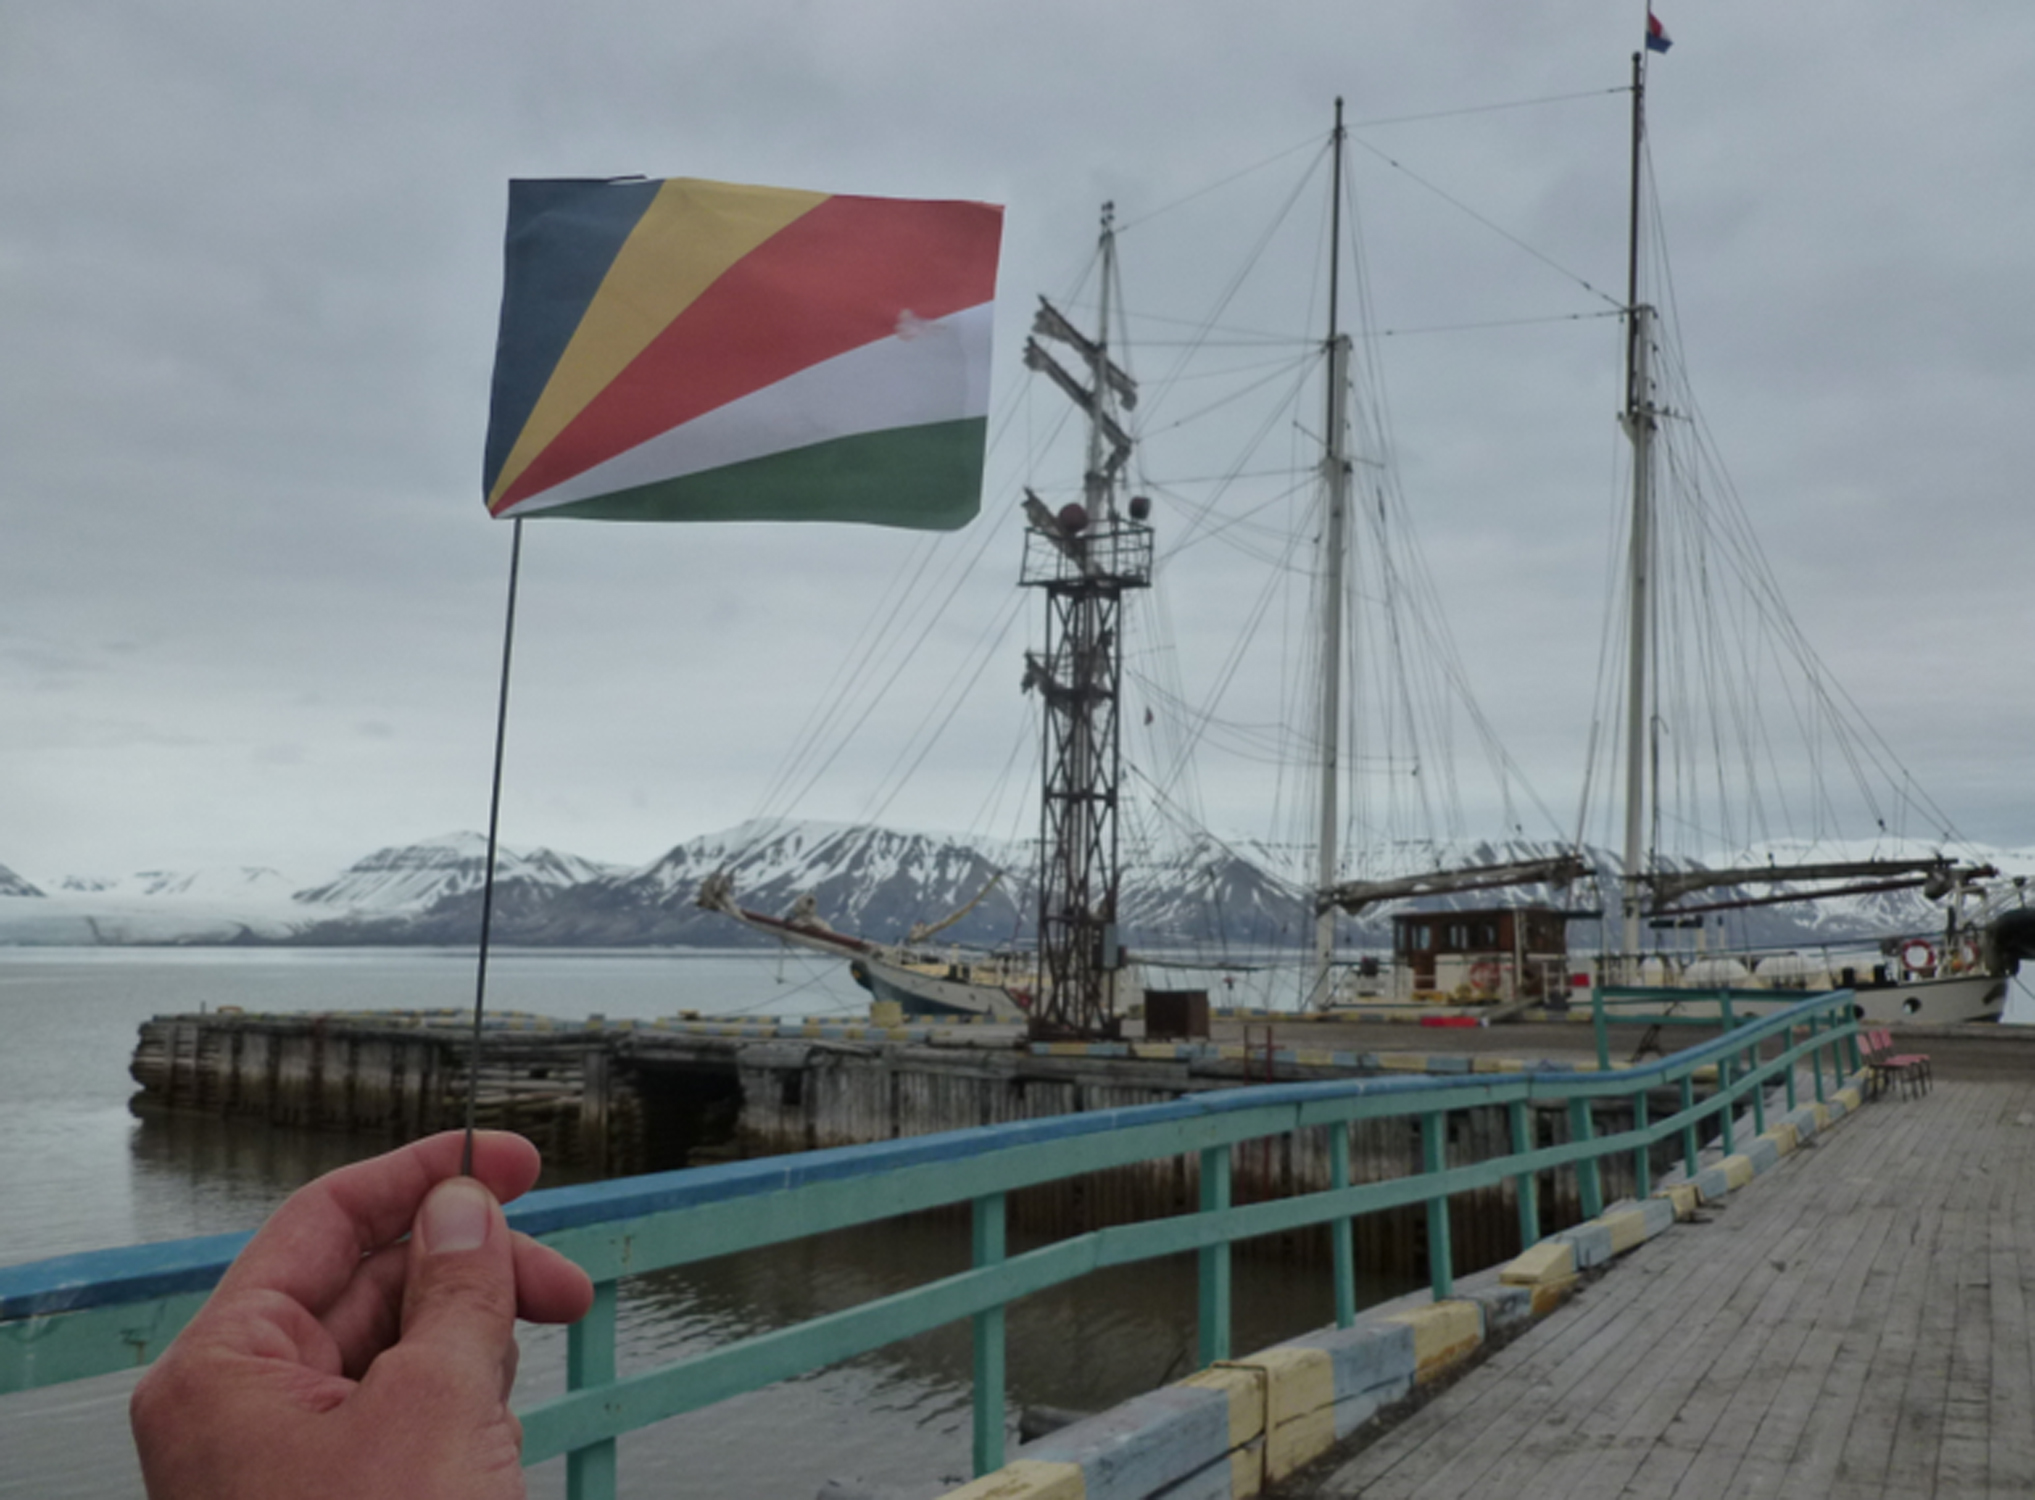 Mike Iacovone holds up the flag of the Seychelles in the Arctic Circle on the Seychelles' independence day (June 29).